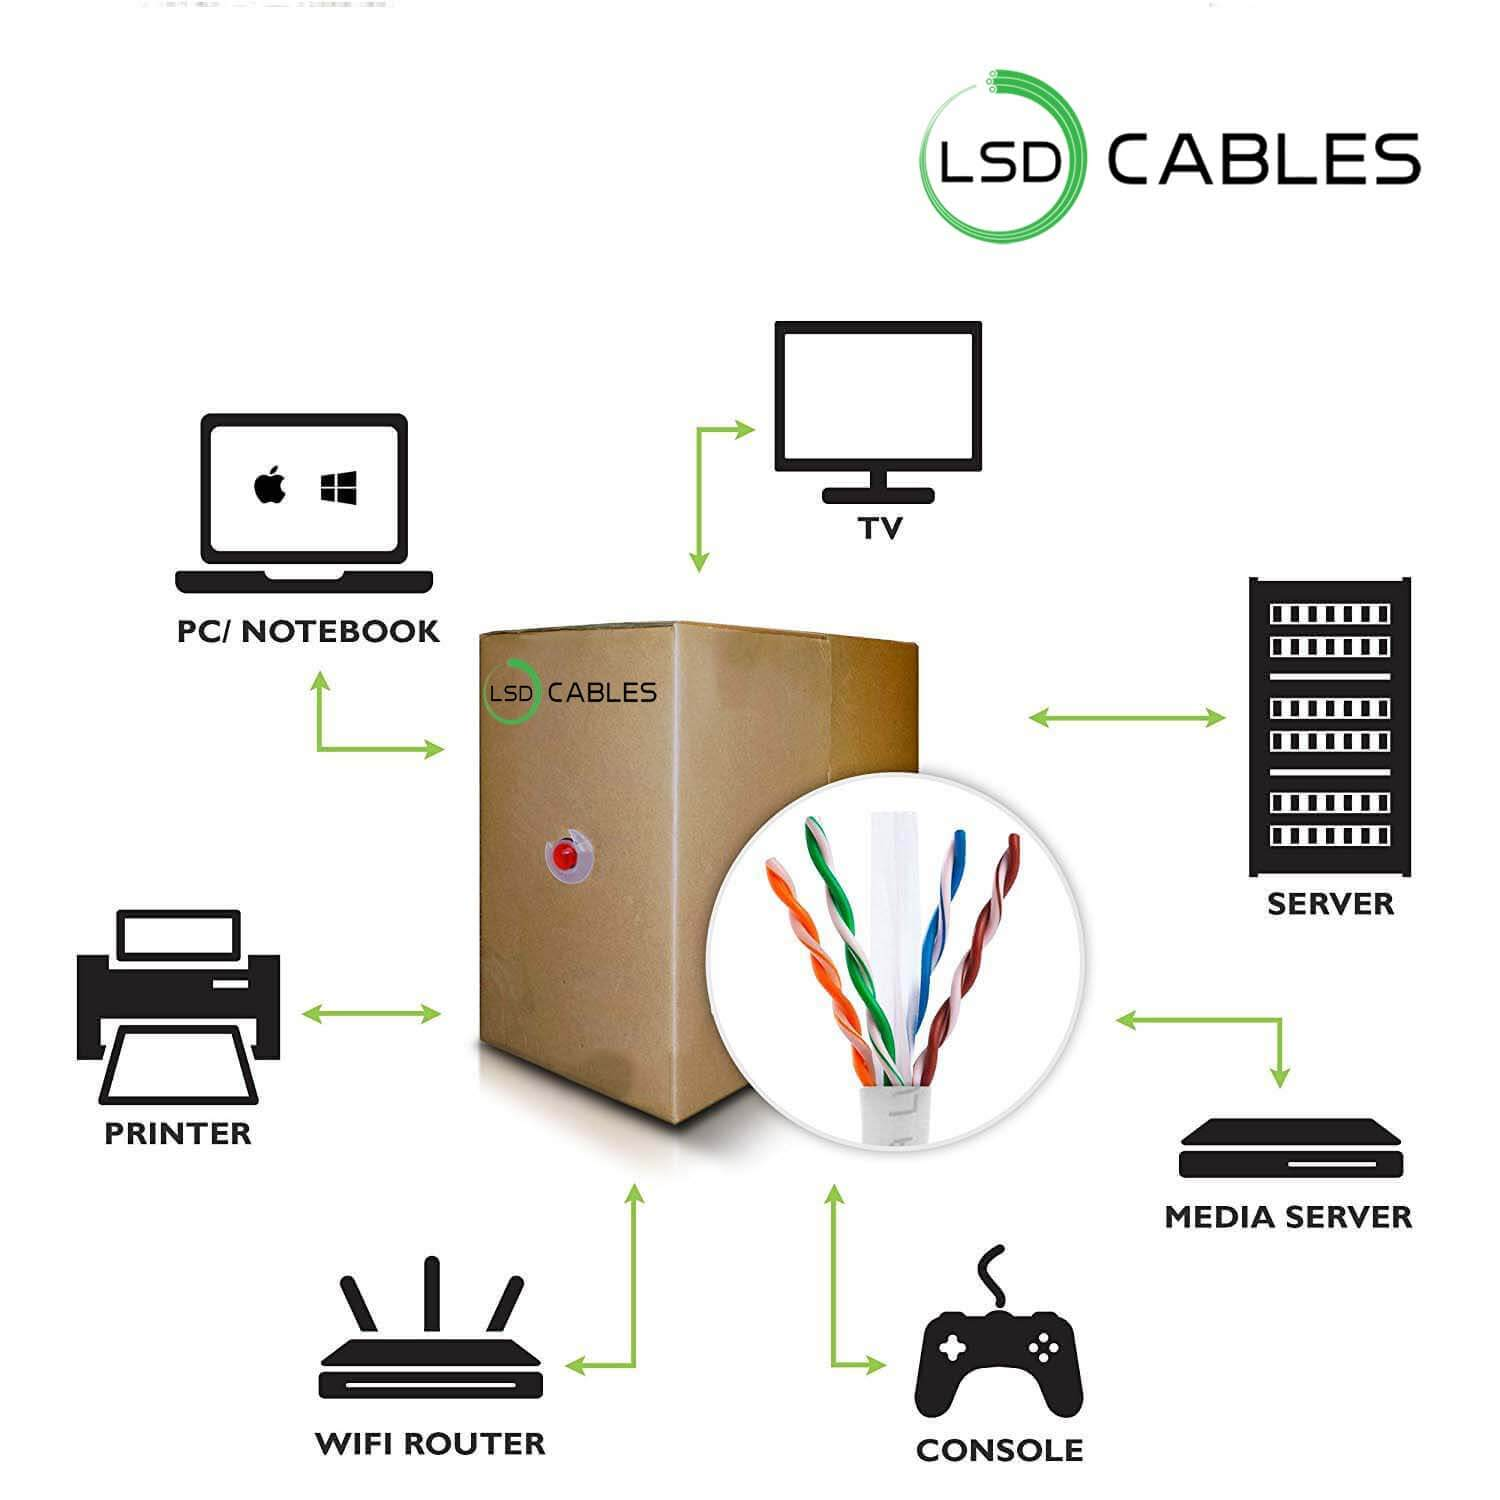 lsdcables cat5eutp cable1 - Cat6 UTP Cable L-601